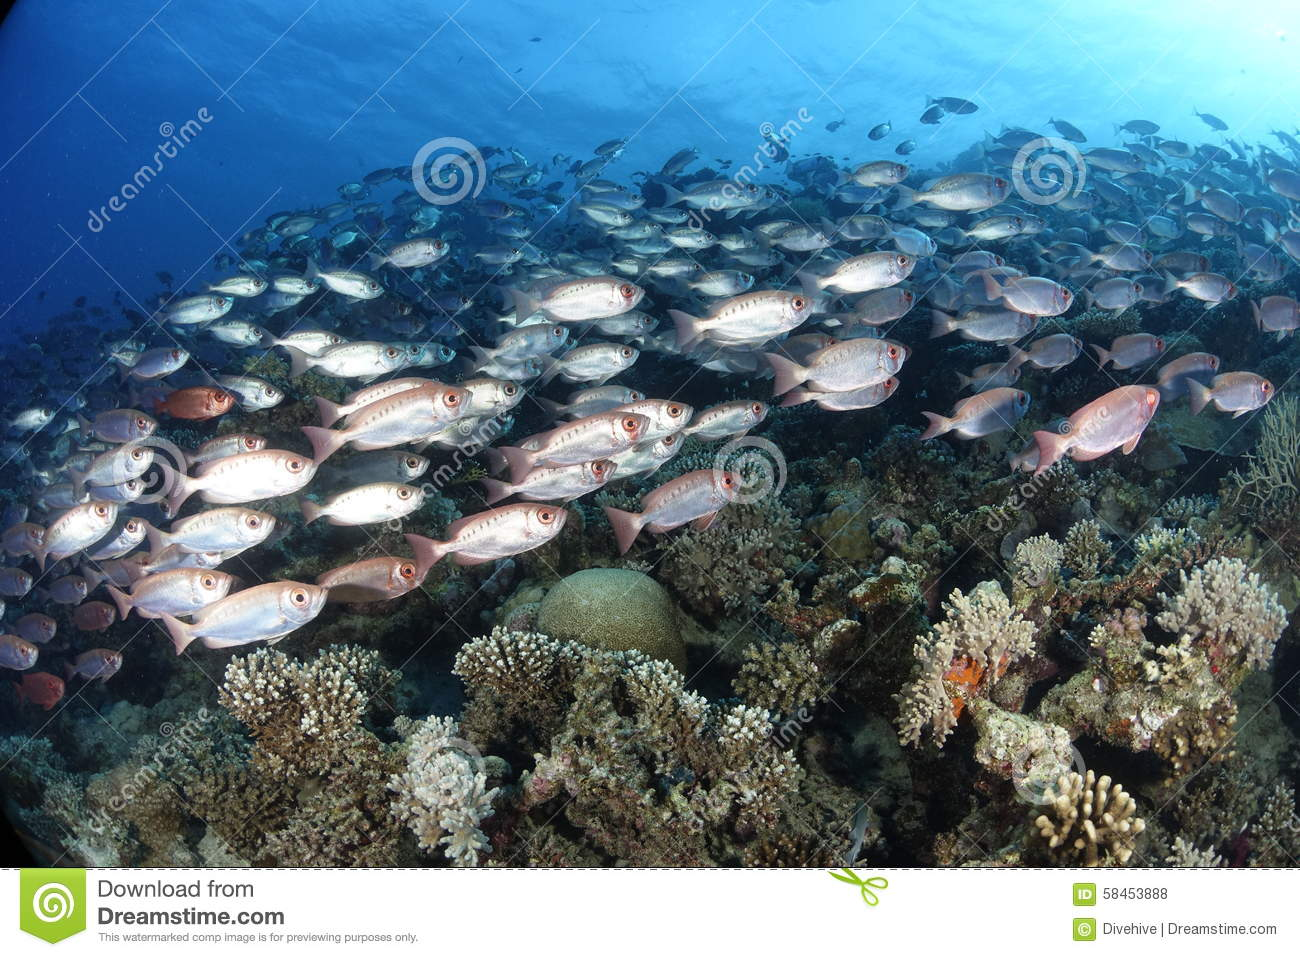 Common bigeyes on a reef in the Red Sea